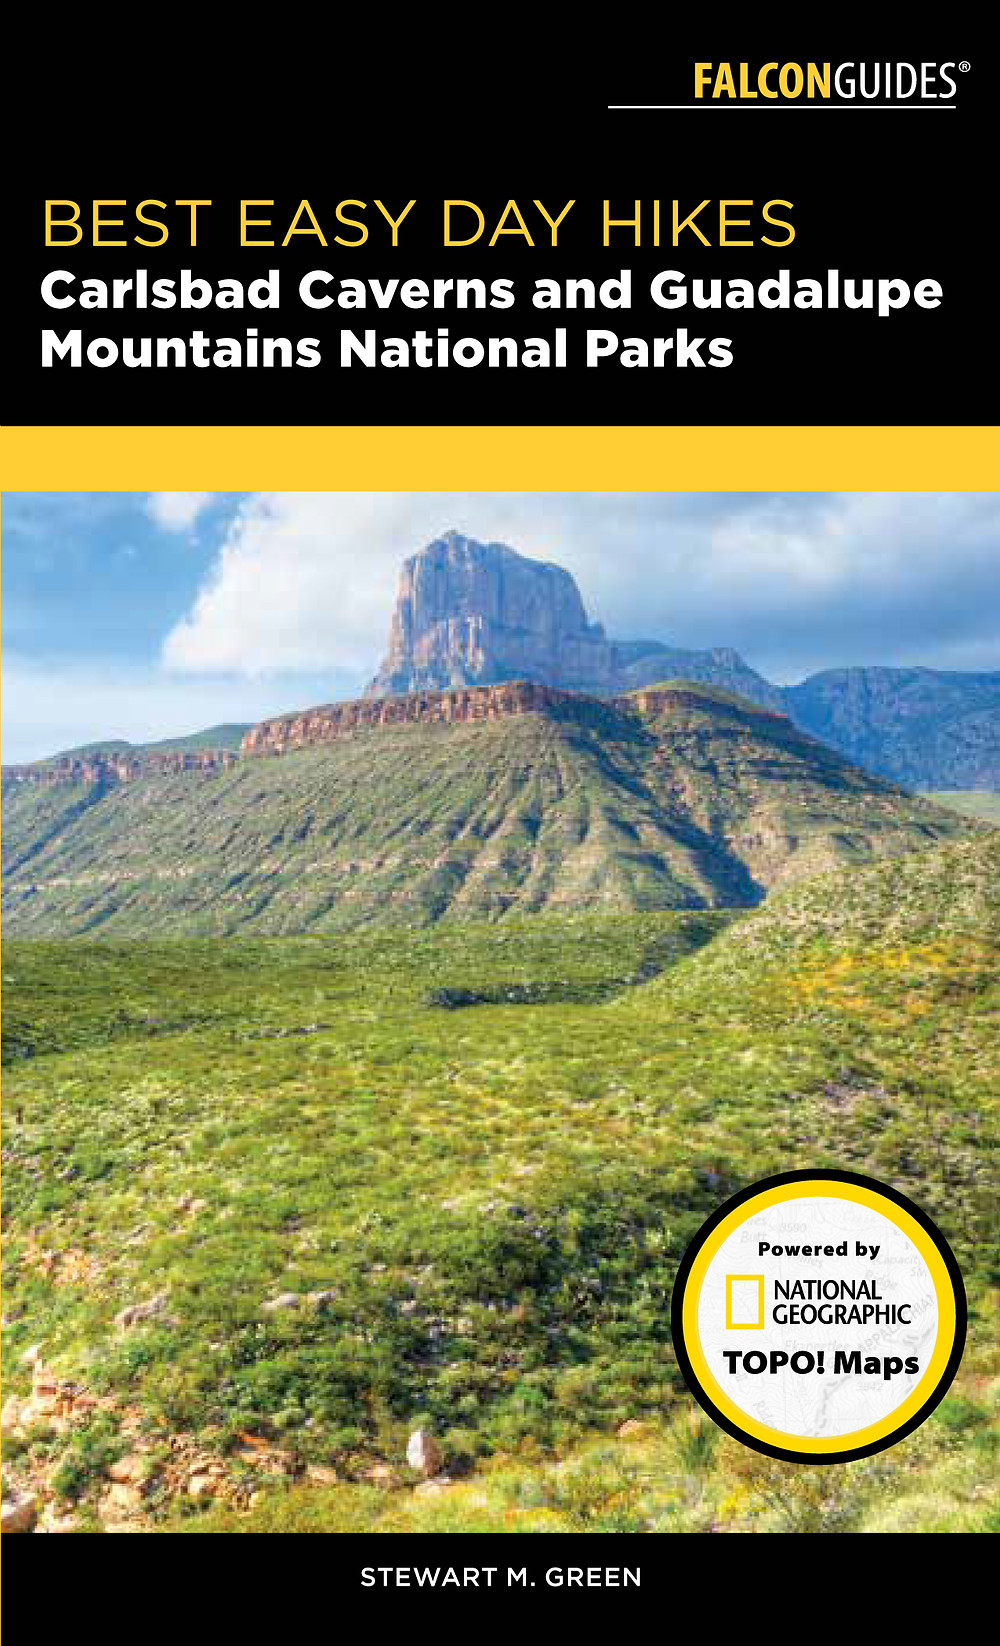 Cover of my new book BEST EASY DAY HIKES CARLSBAD CAVERNS AND GUADALUPE MOUNTAINS NATIONAL PARKS.